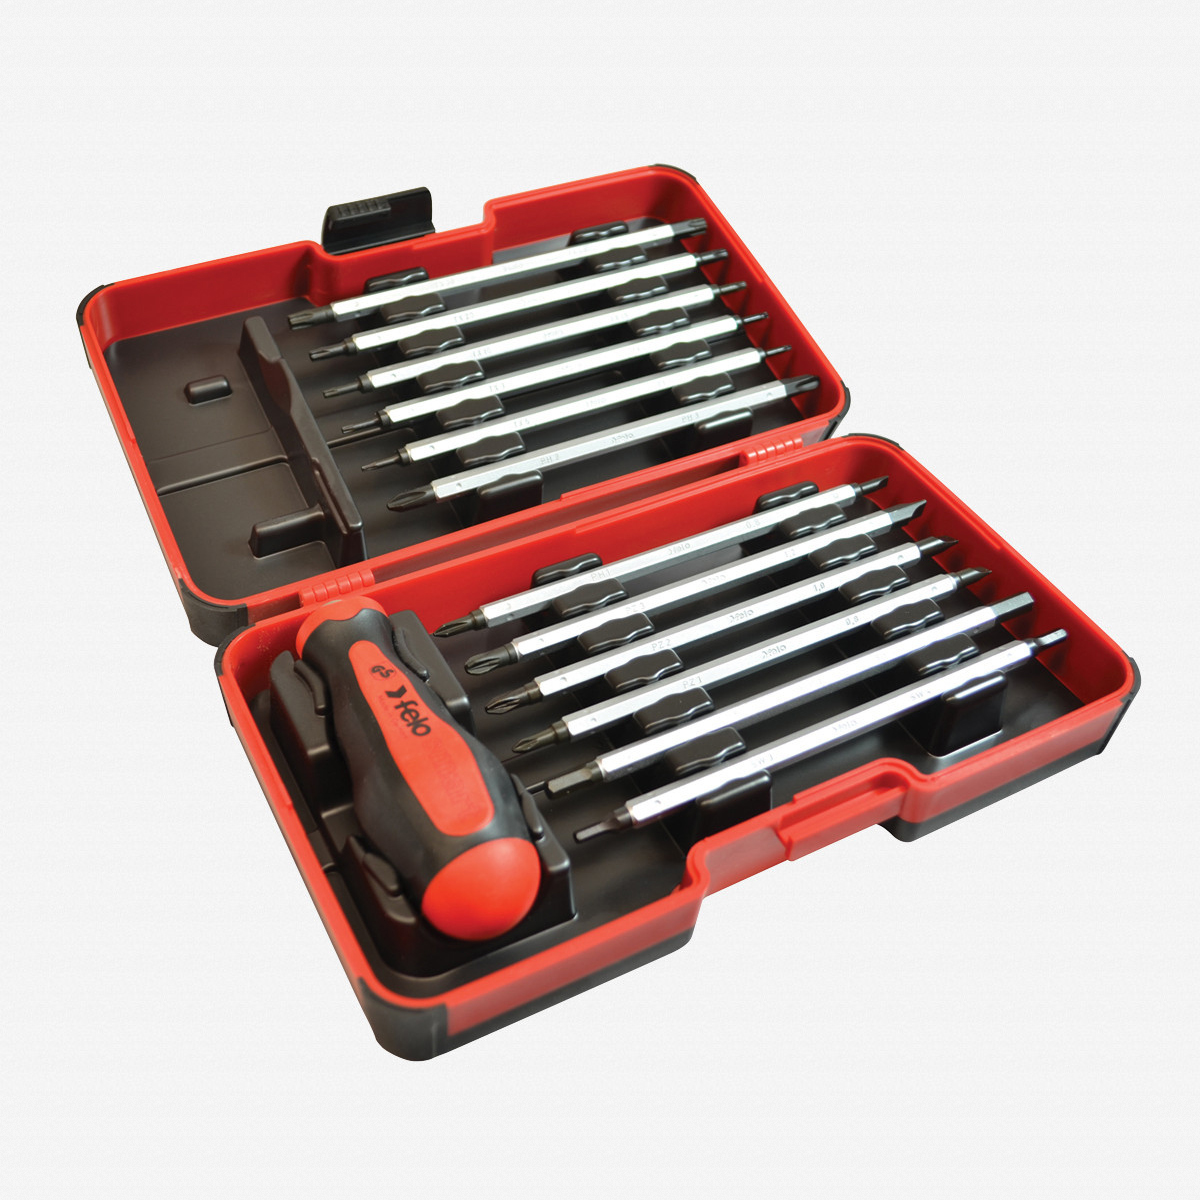 Felo 32094 13 Piece Metric Smart Box - Slotted, Phillips, Pozidriv, Hex, Torx Blades with Handle - KC Tool